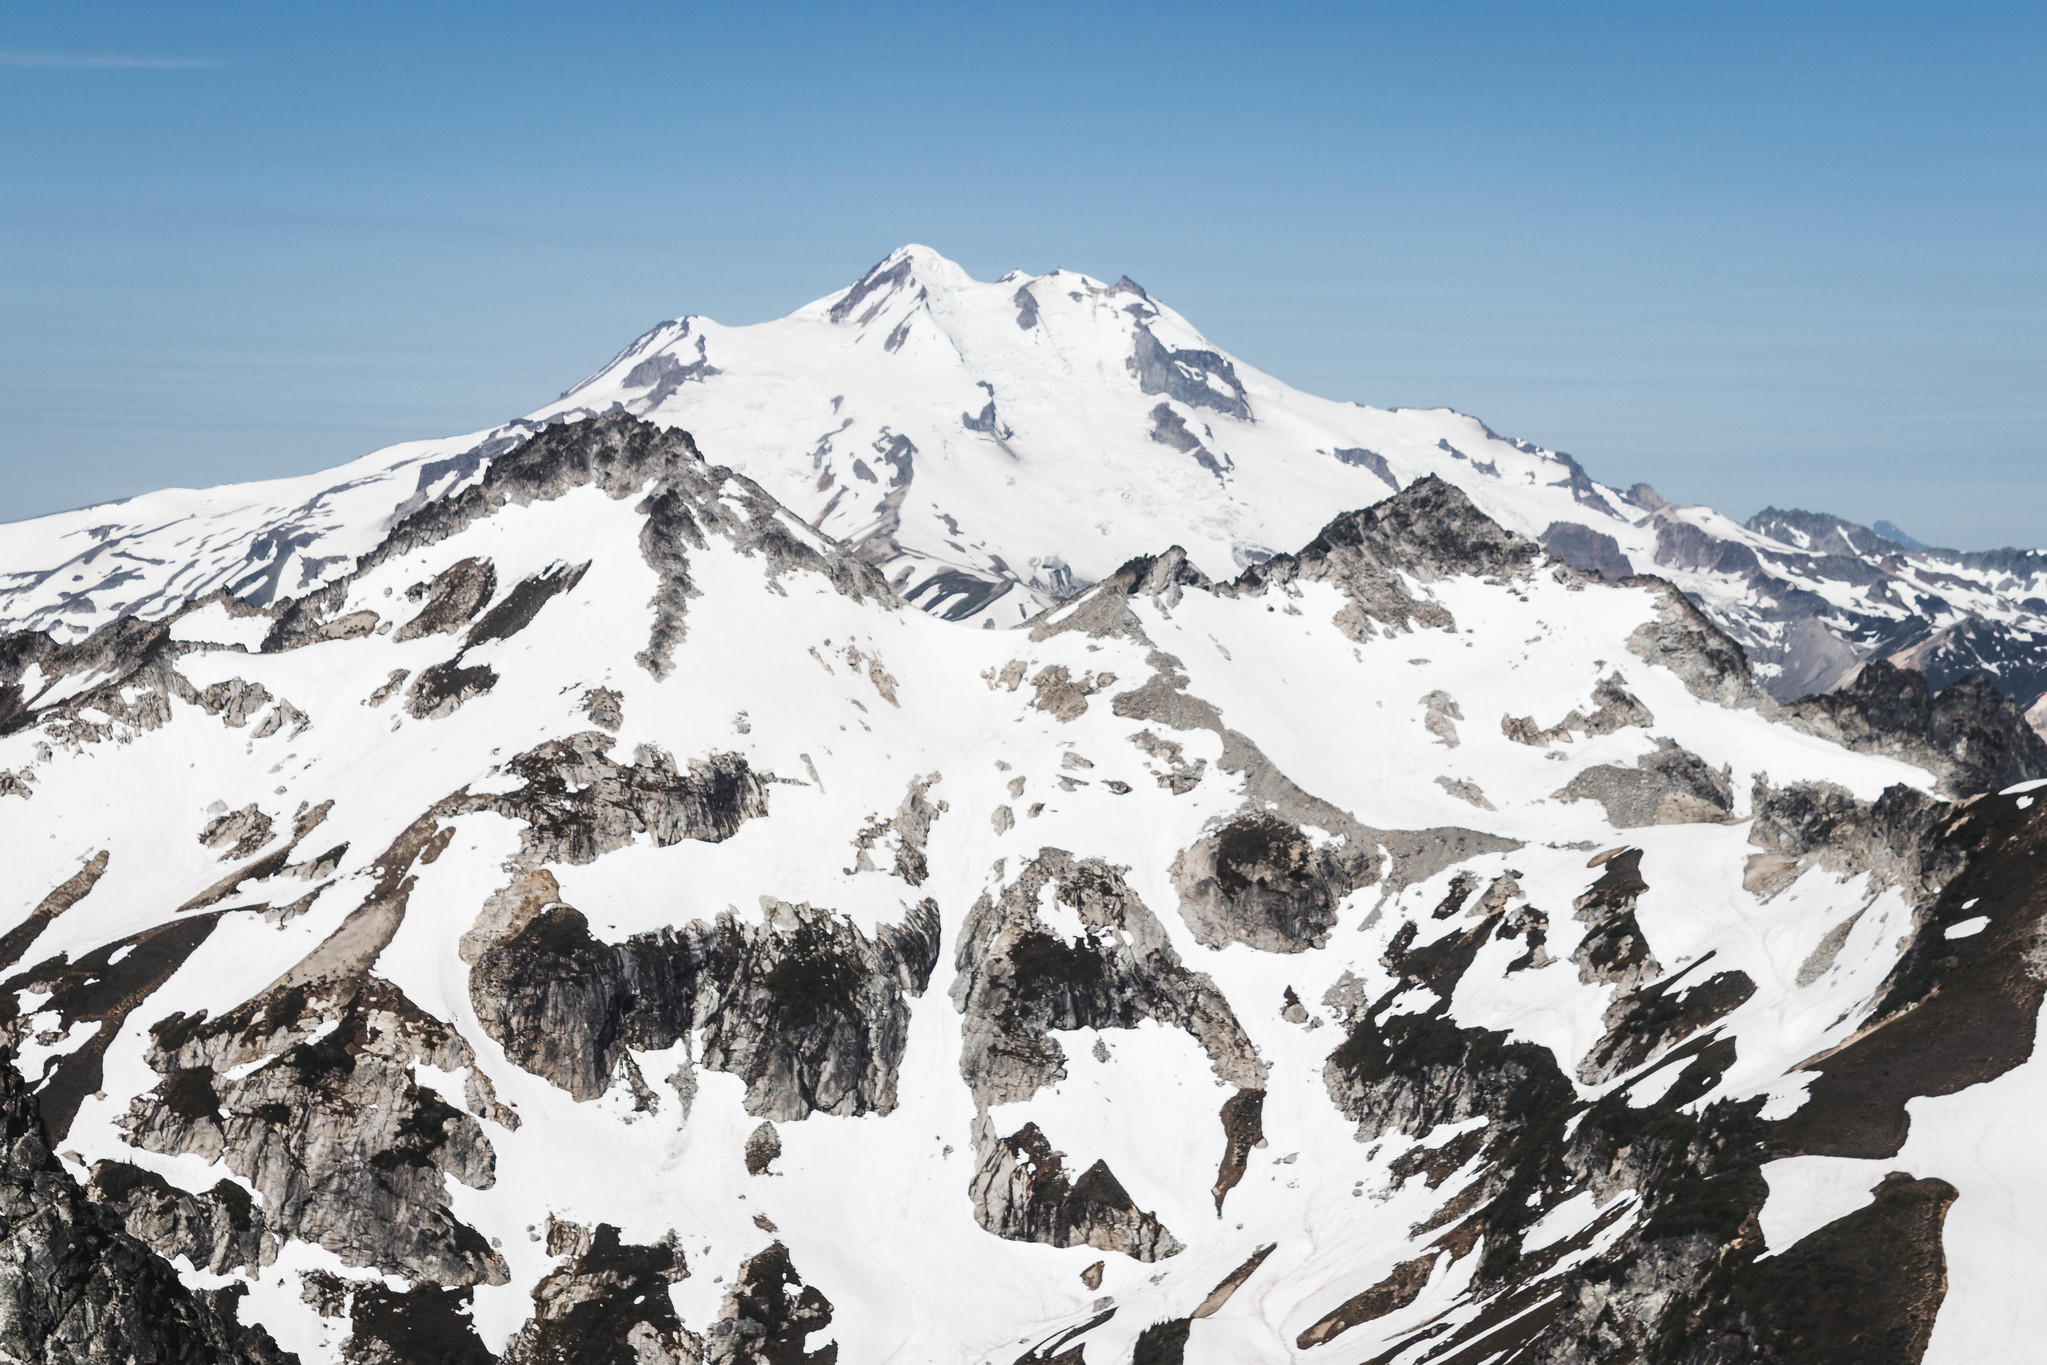 Glacier Peak with Napeequa and Cirque